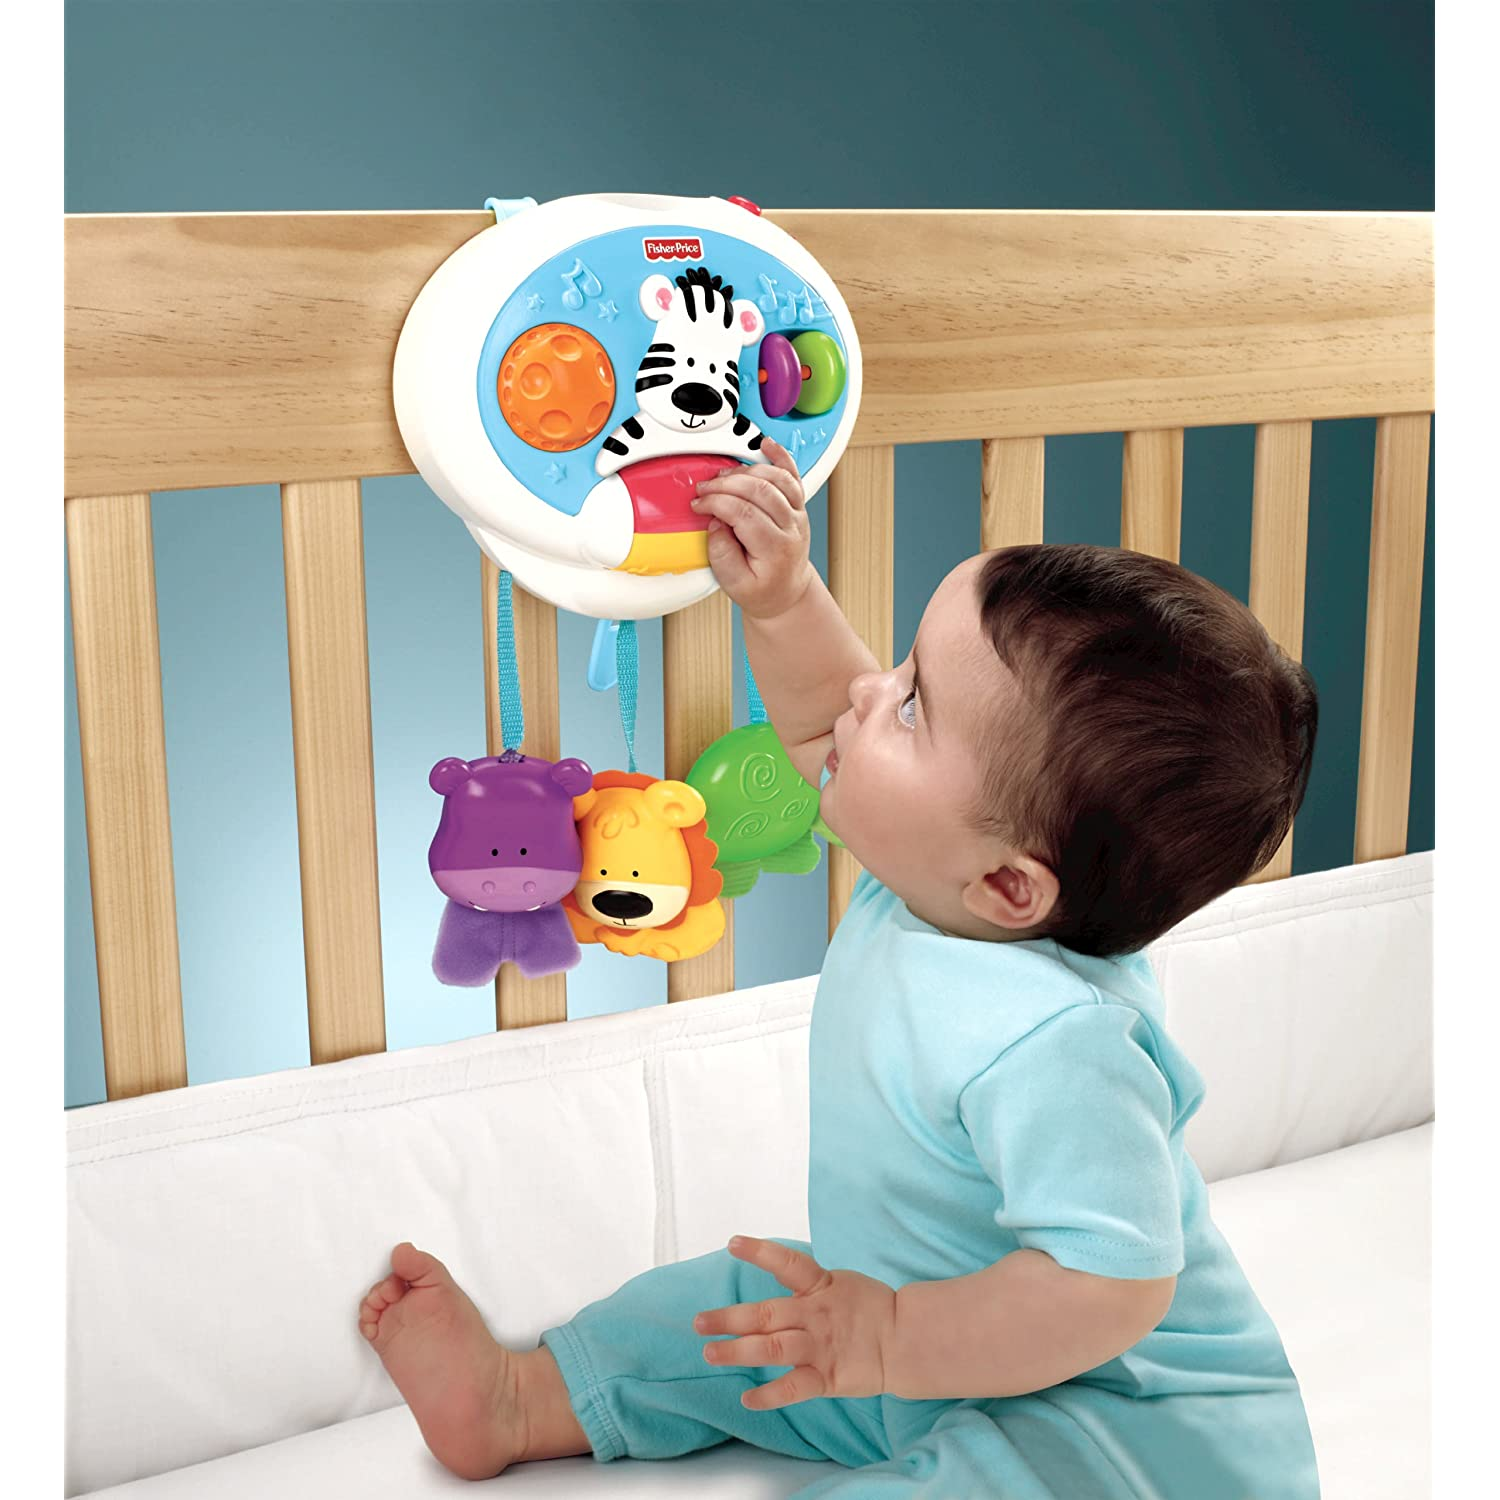 Crib Toys Learning : Babies crib toys